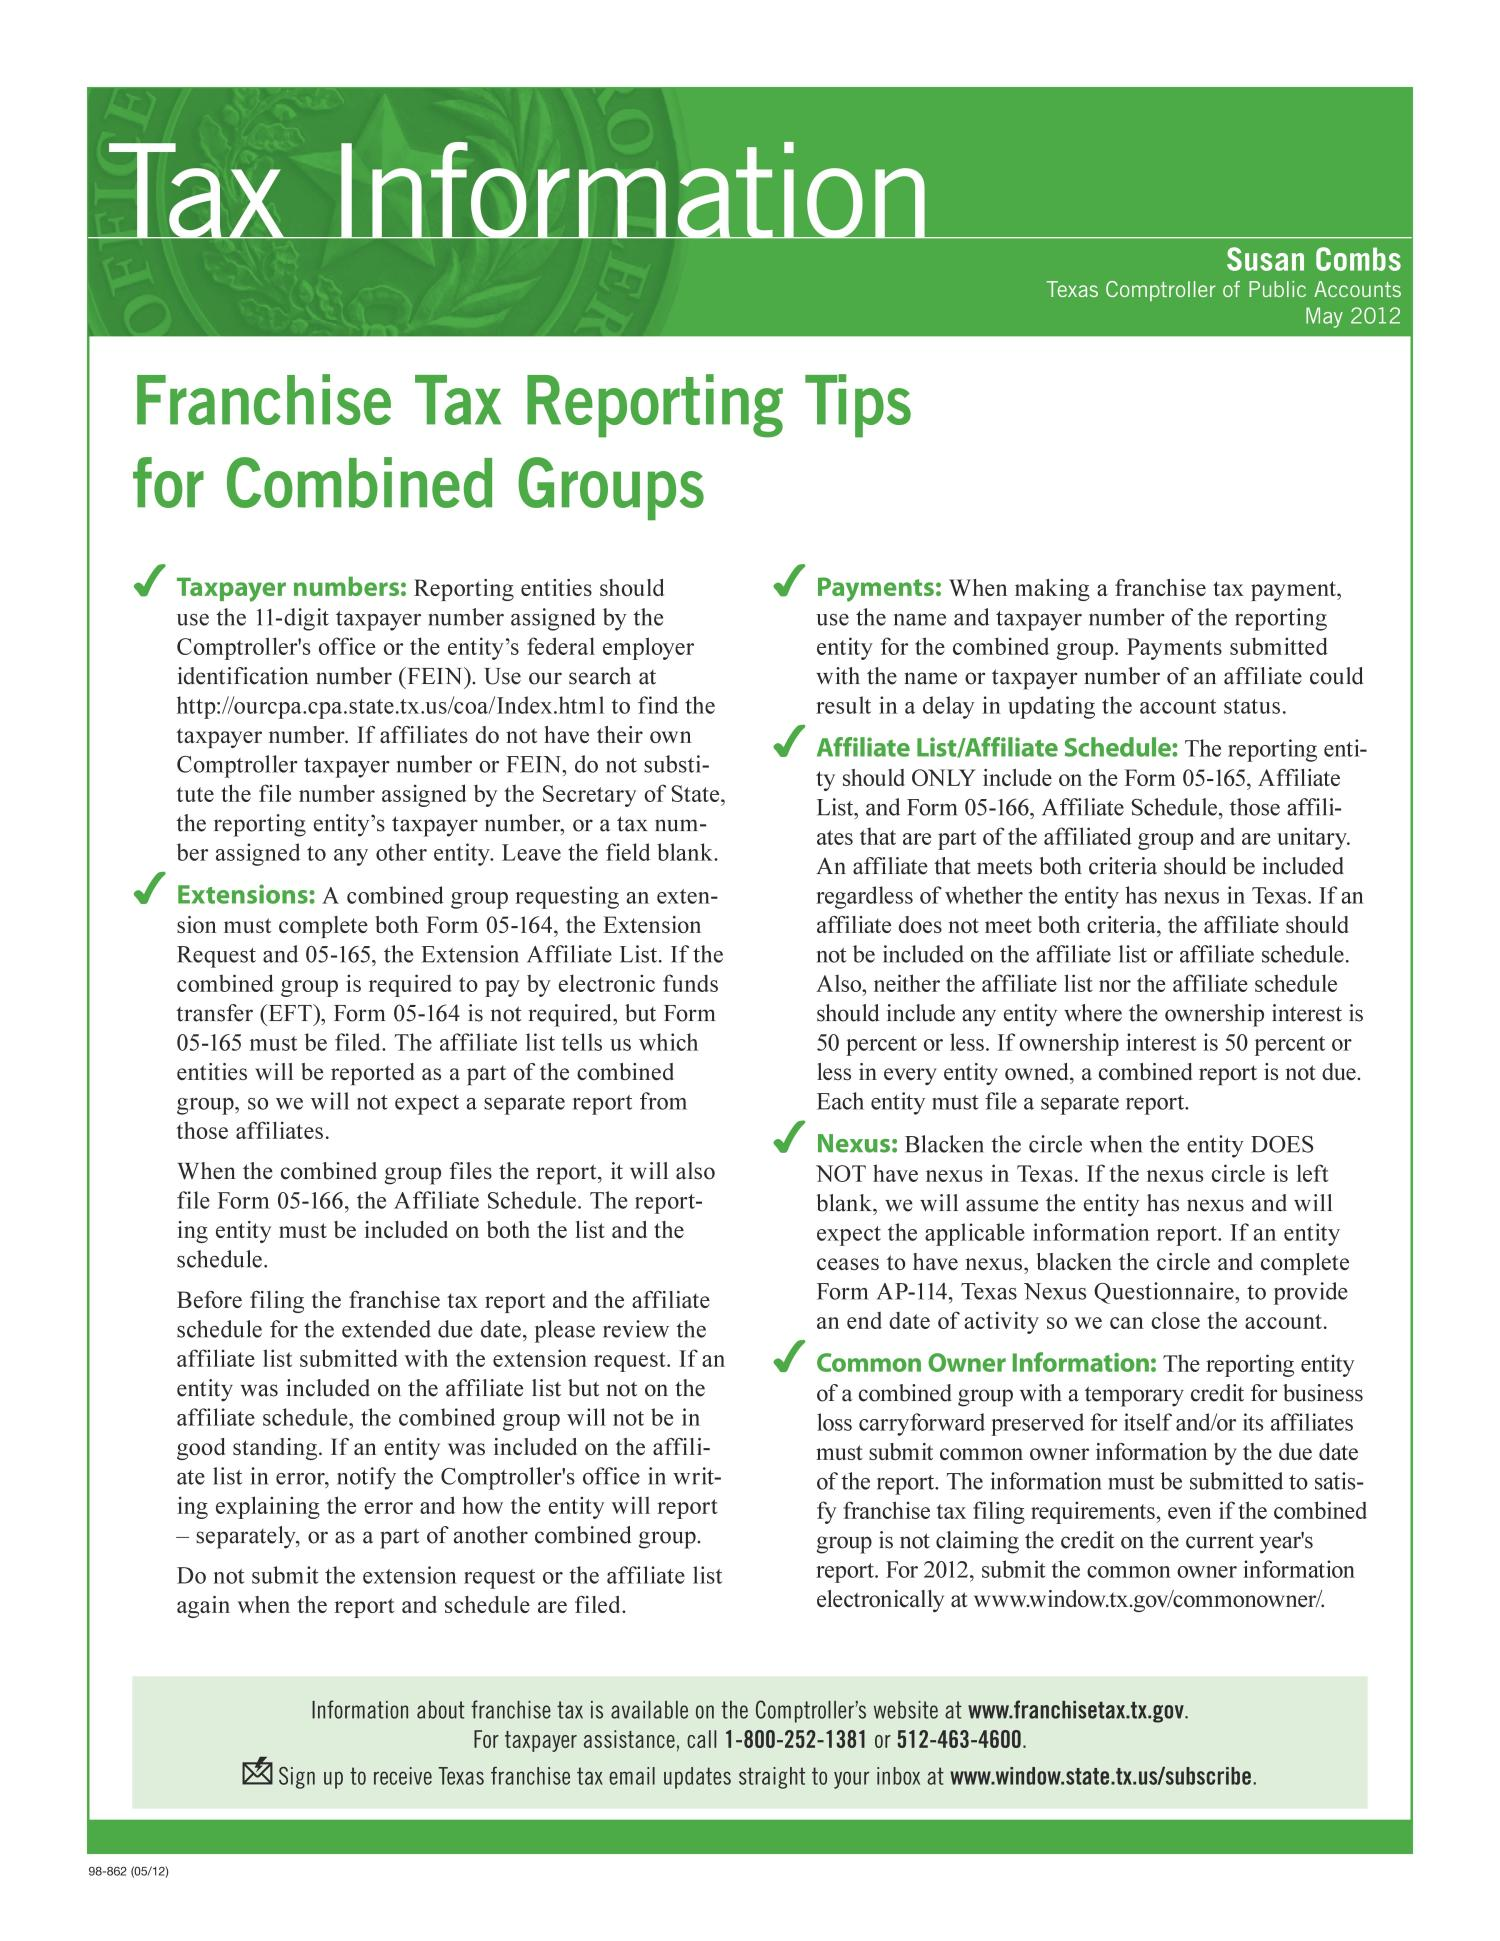 Tax Information Franchise Tax Reporting Tips For Combined Groups